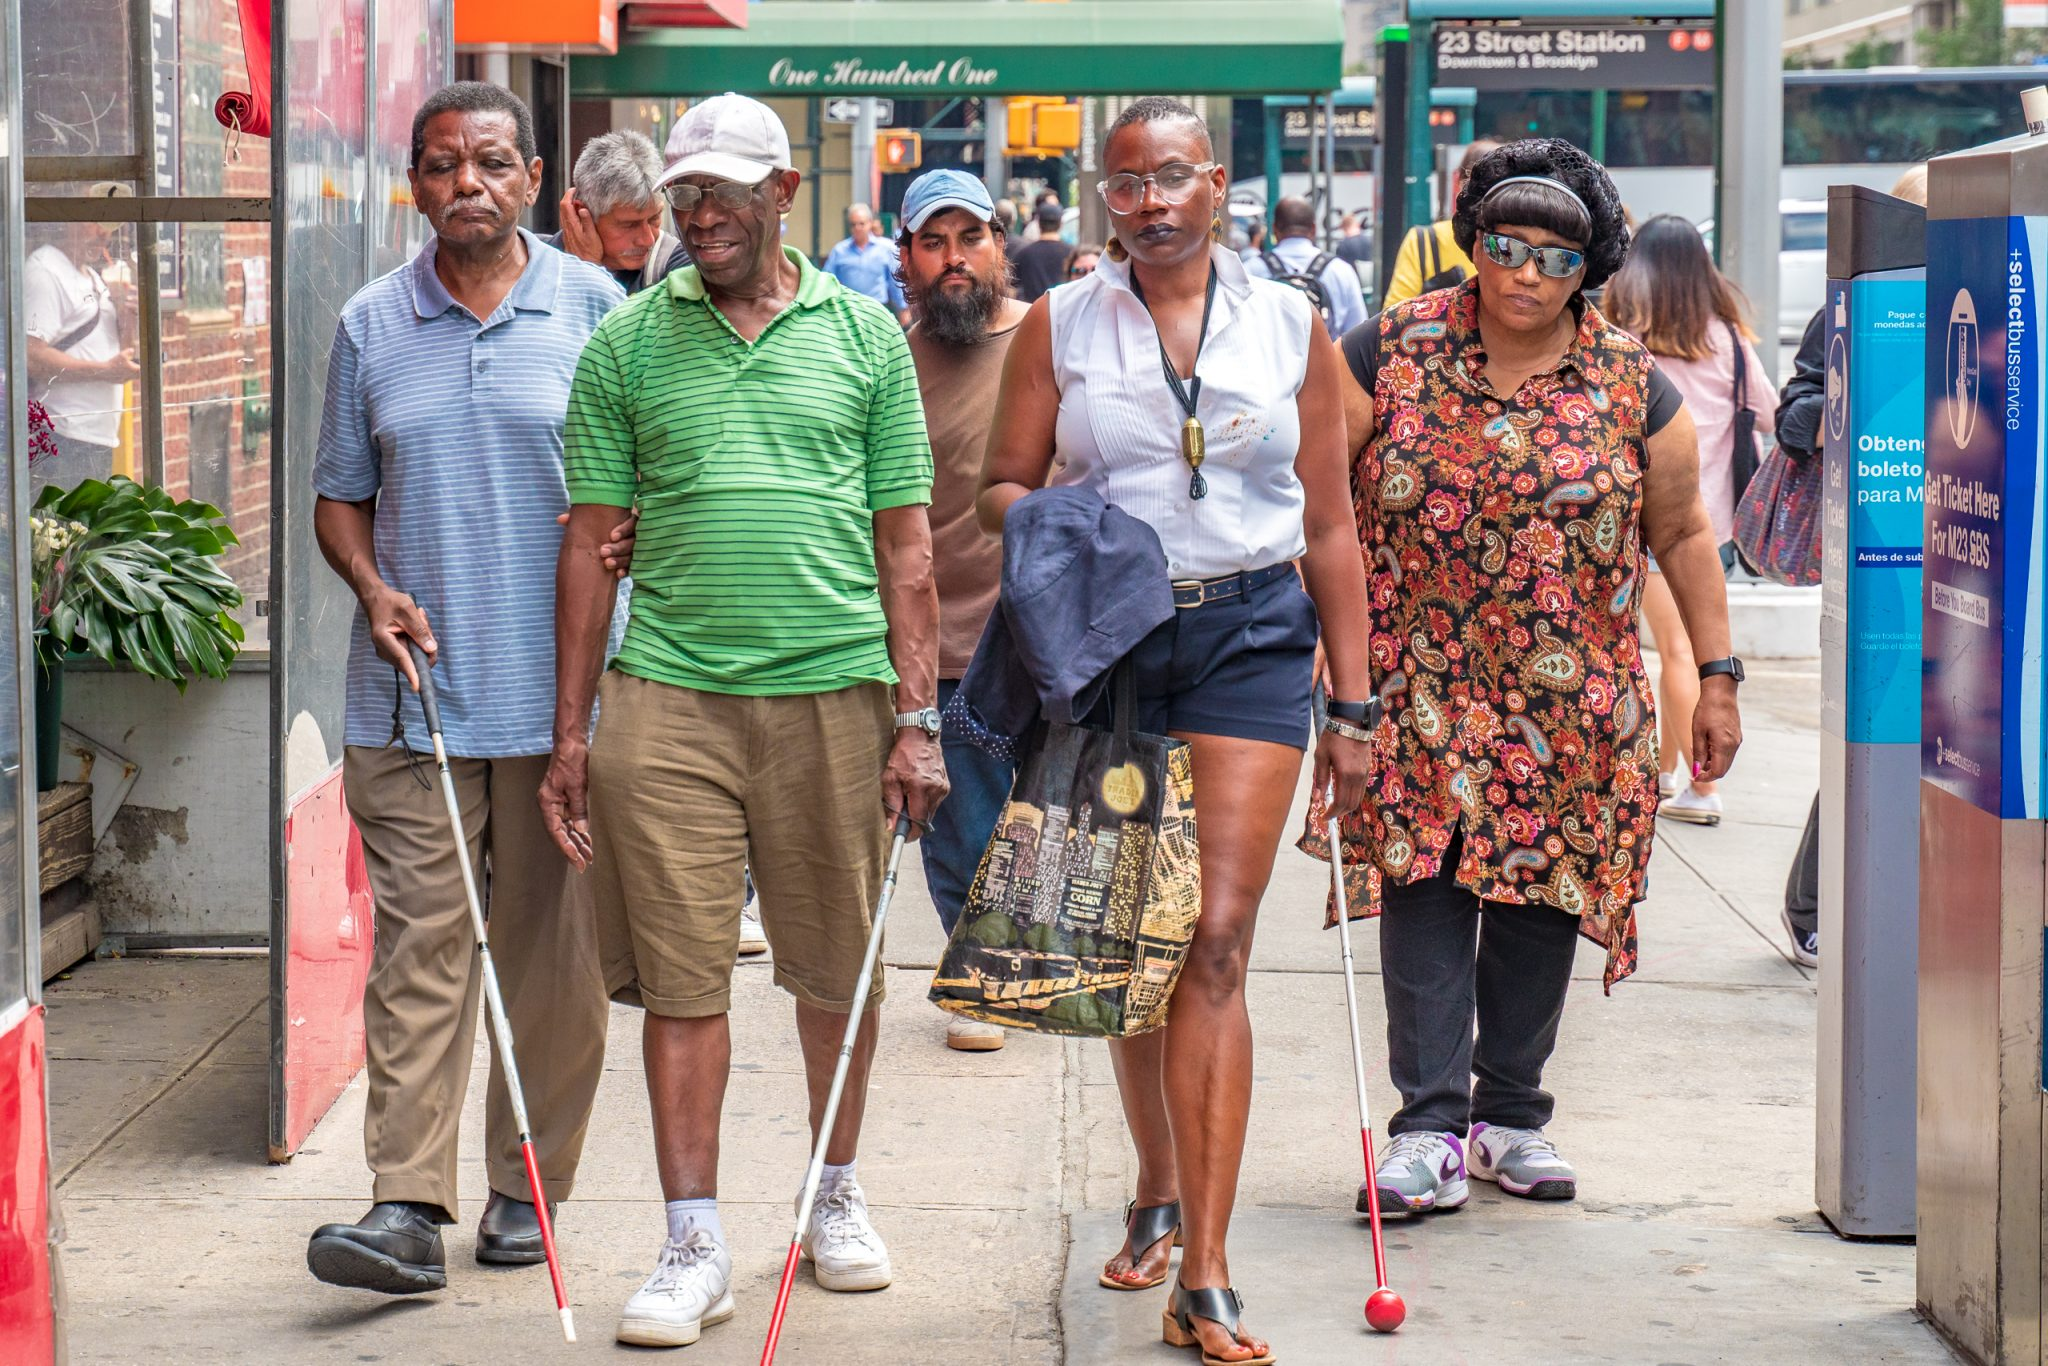 Image description: A group of four people, 2 older men (left), an orientation and mobility instructor (right), and an older woman (far right) walk down a city block.